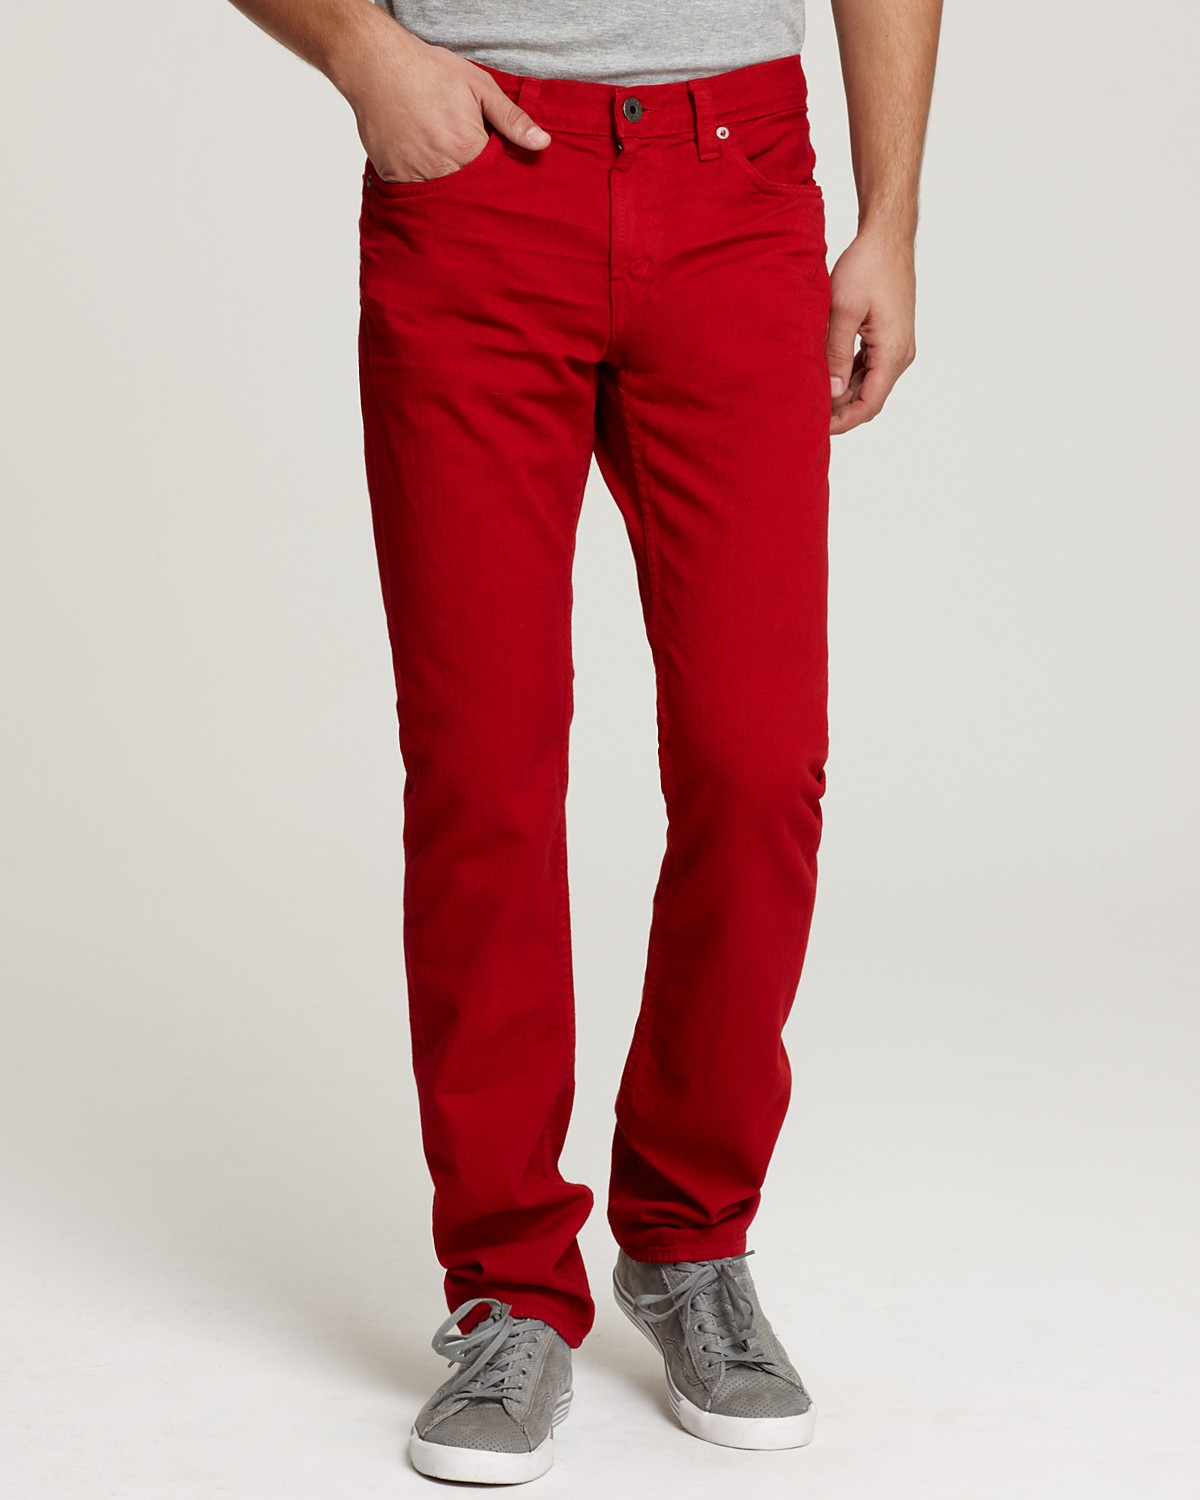 Shop Target for Red Pants you will love at great low prices. Spend $35+ or use your REDcard & get free 2-day shipping on most items or same-day pick-up in store.